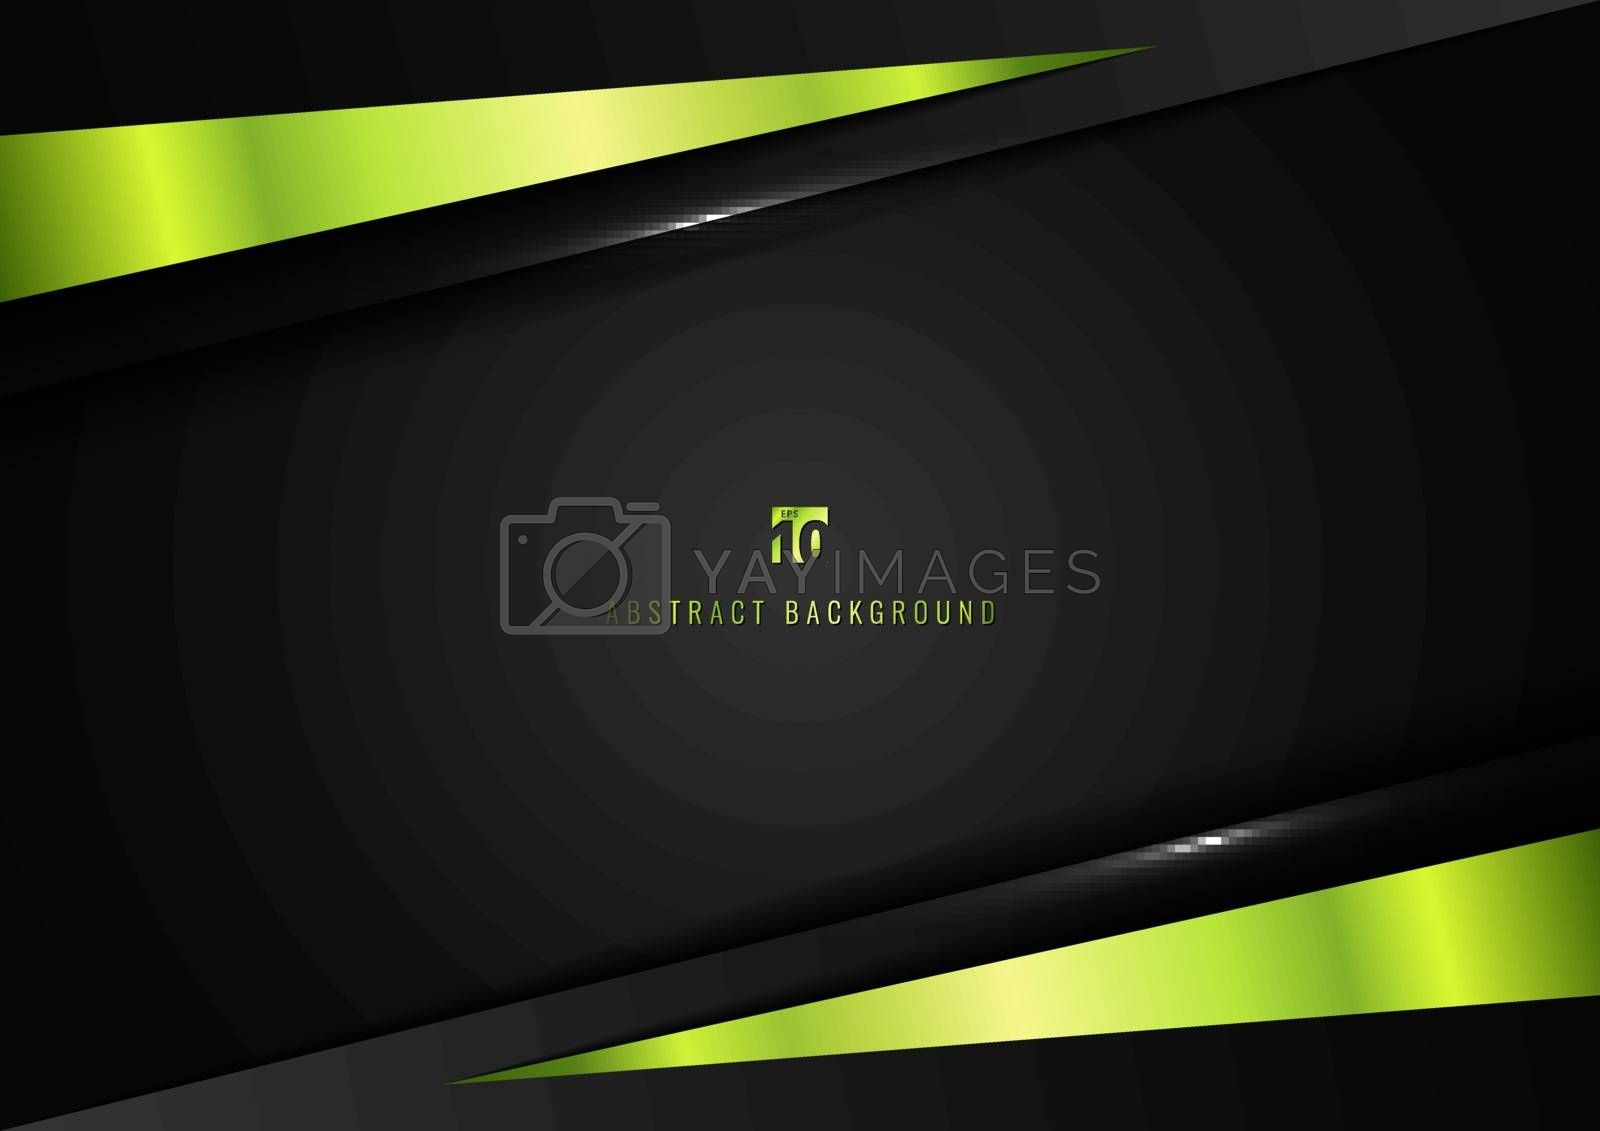 Template Corporate Concept Geometric Triangle green and Black Contrast on Dark Background. Vector Graphic Design Illustration